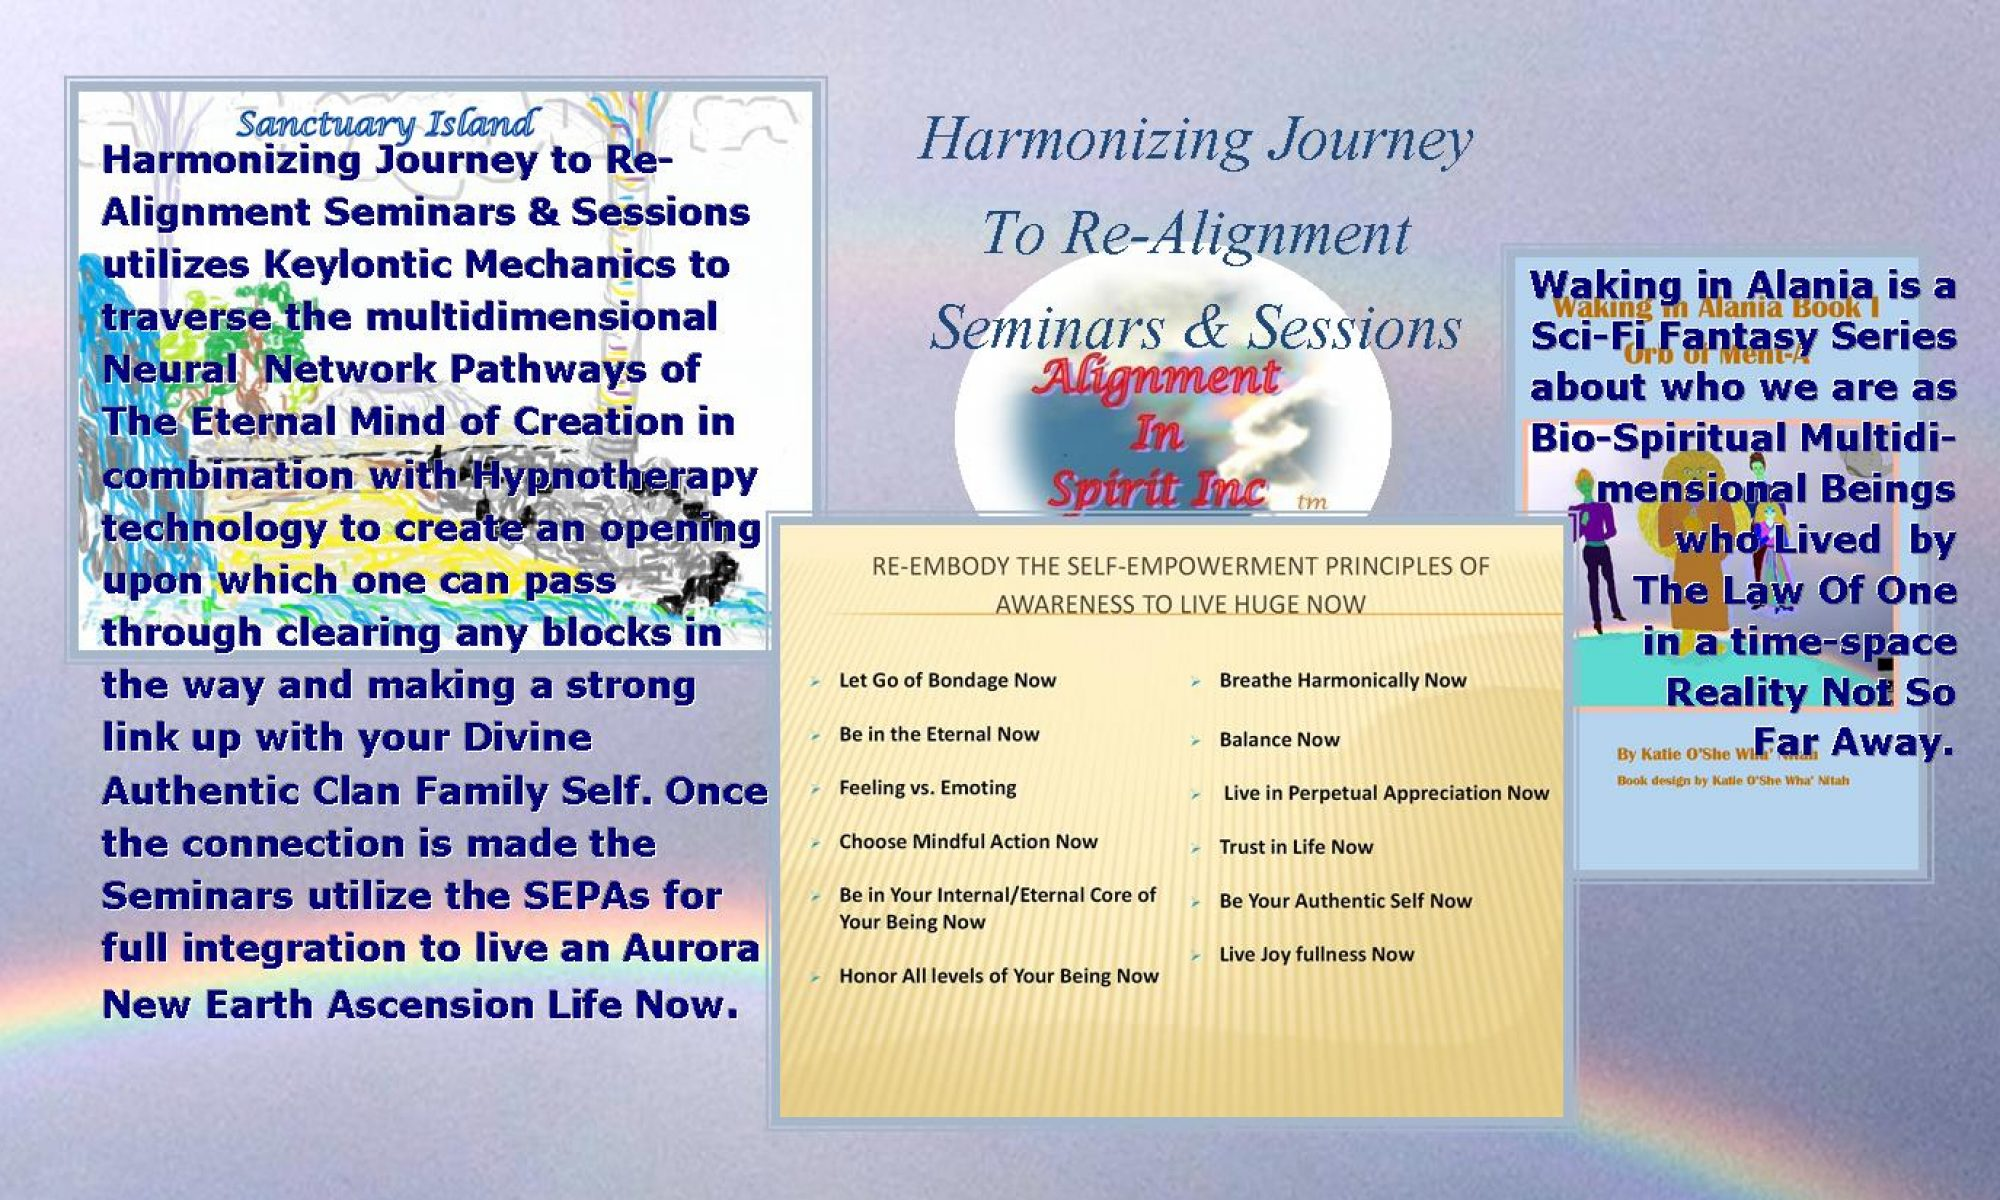 Harmonizing Journey to Re-Alignment Seminars  and Sessions